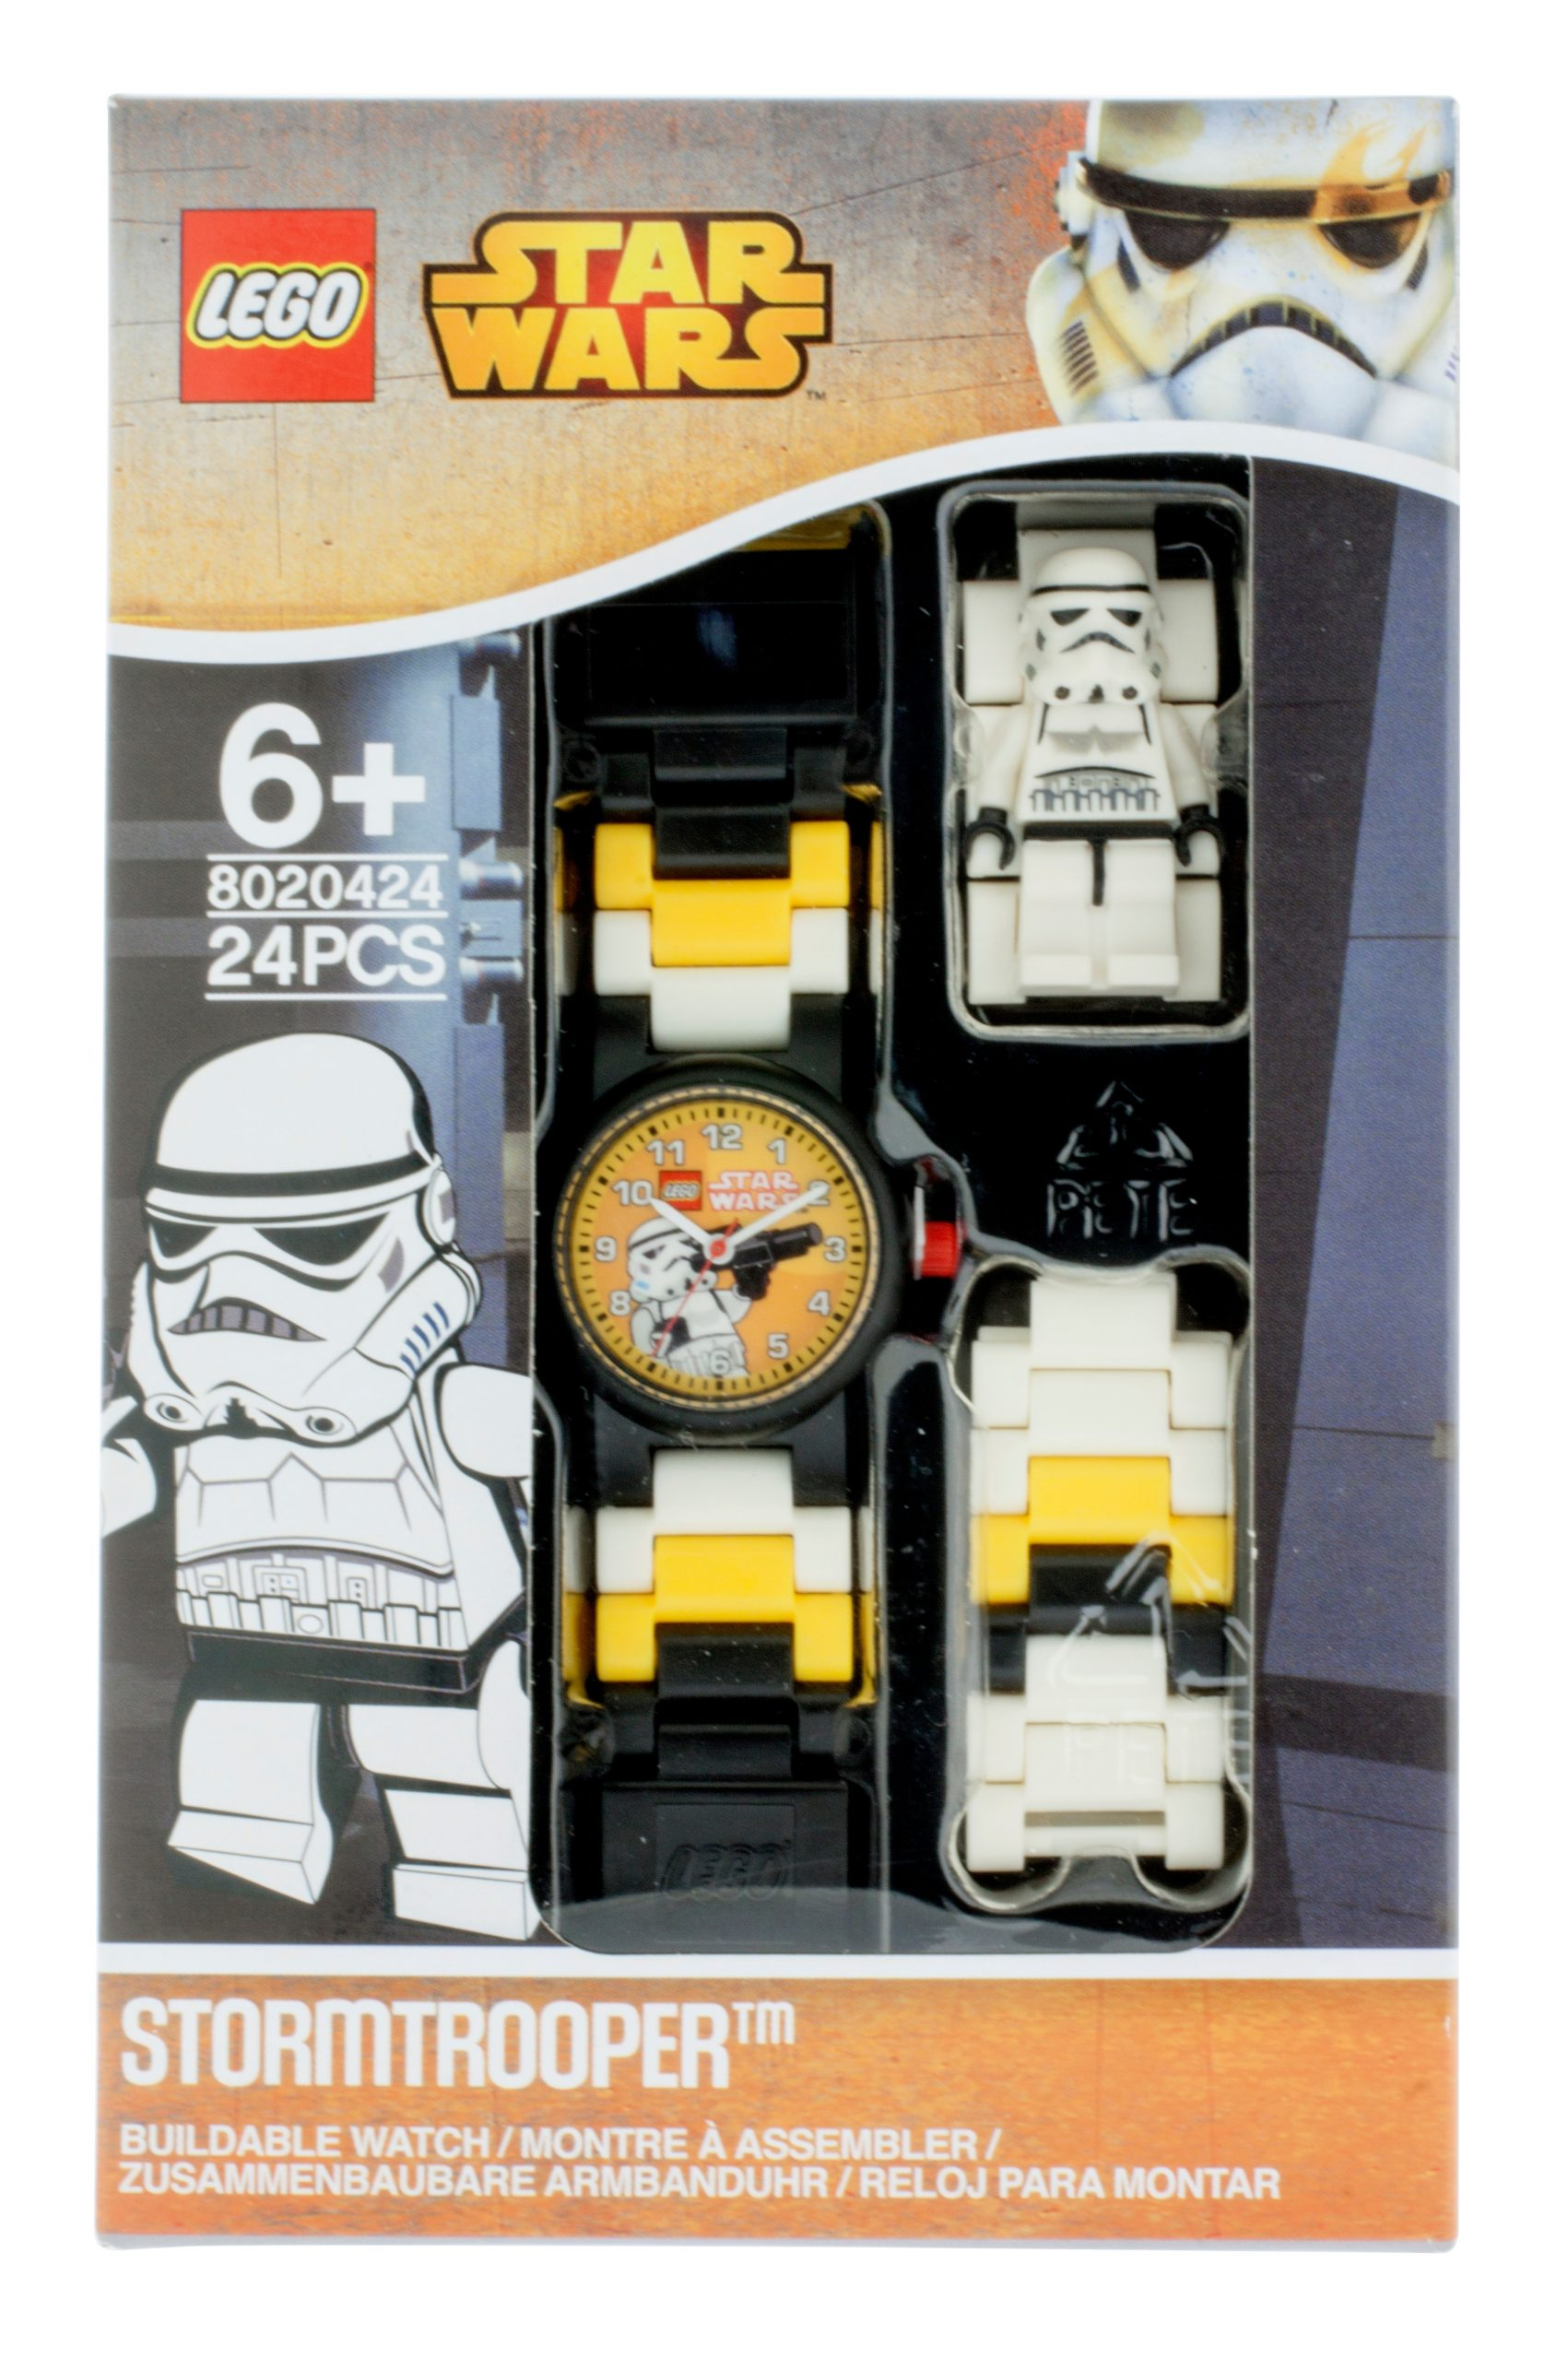 lego 5005167 star wars stormtrooper minifigure link watch scaled